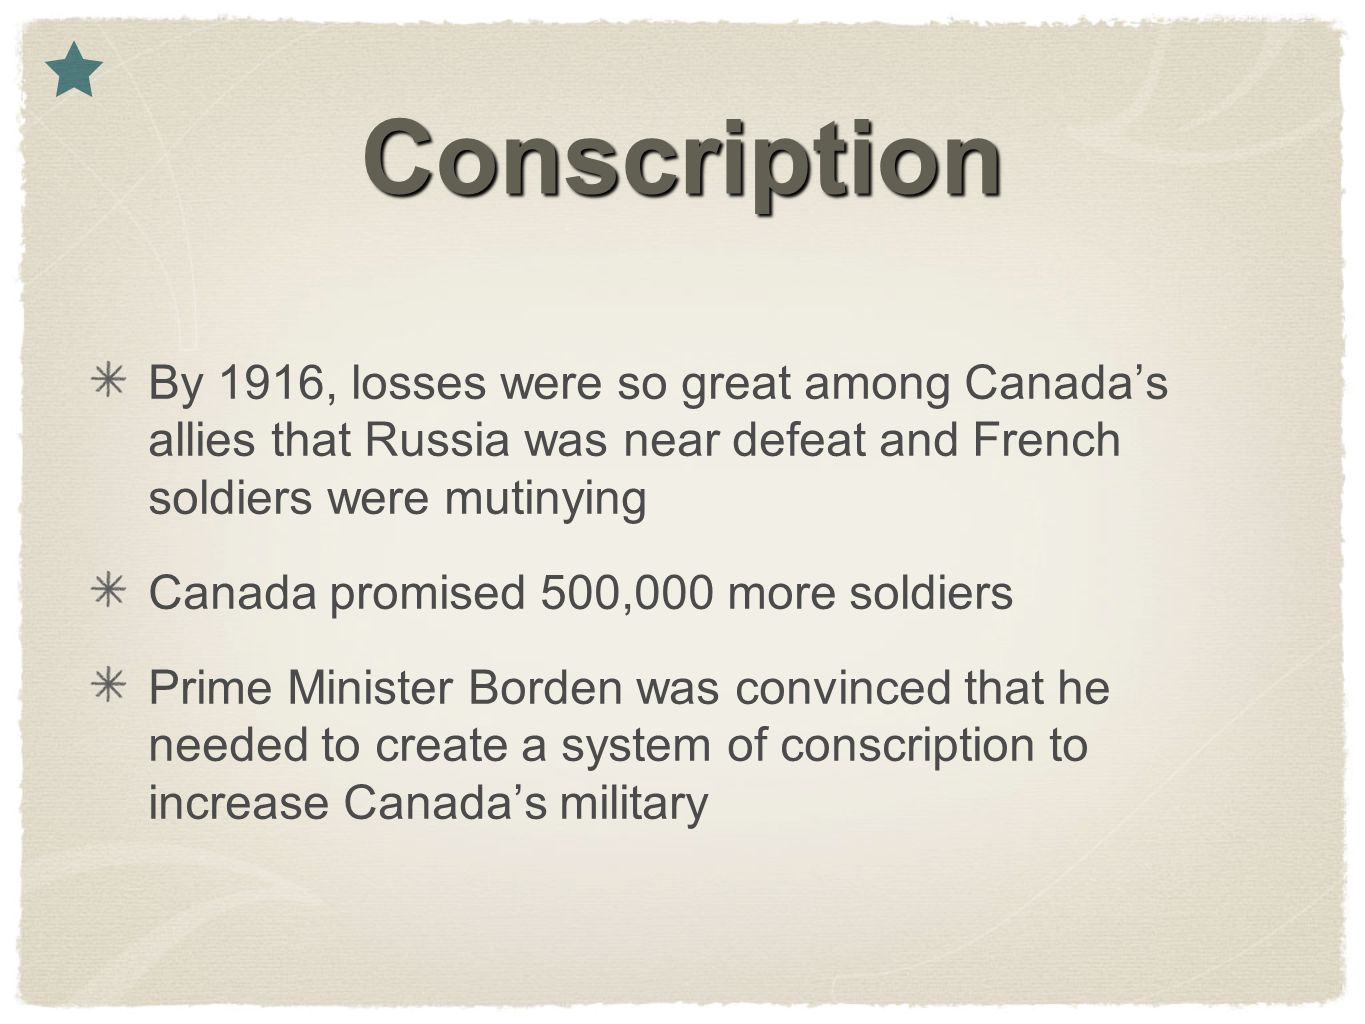 Conscription By 1916, losses were so great among Canada's allies that Russia was near defeat and French soldiers were mutinying.